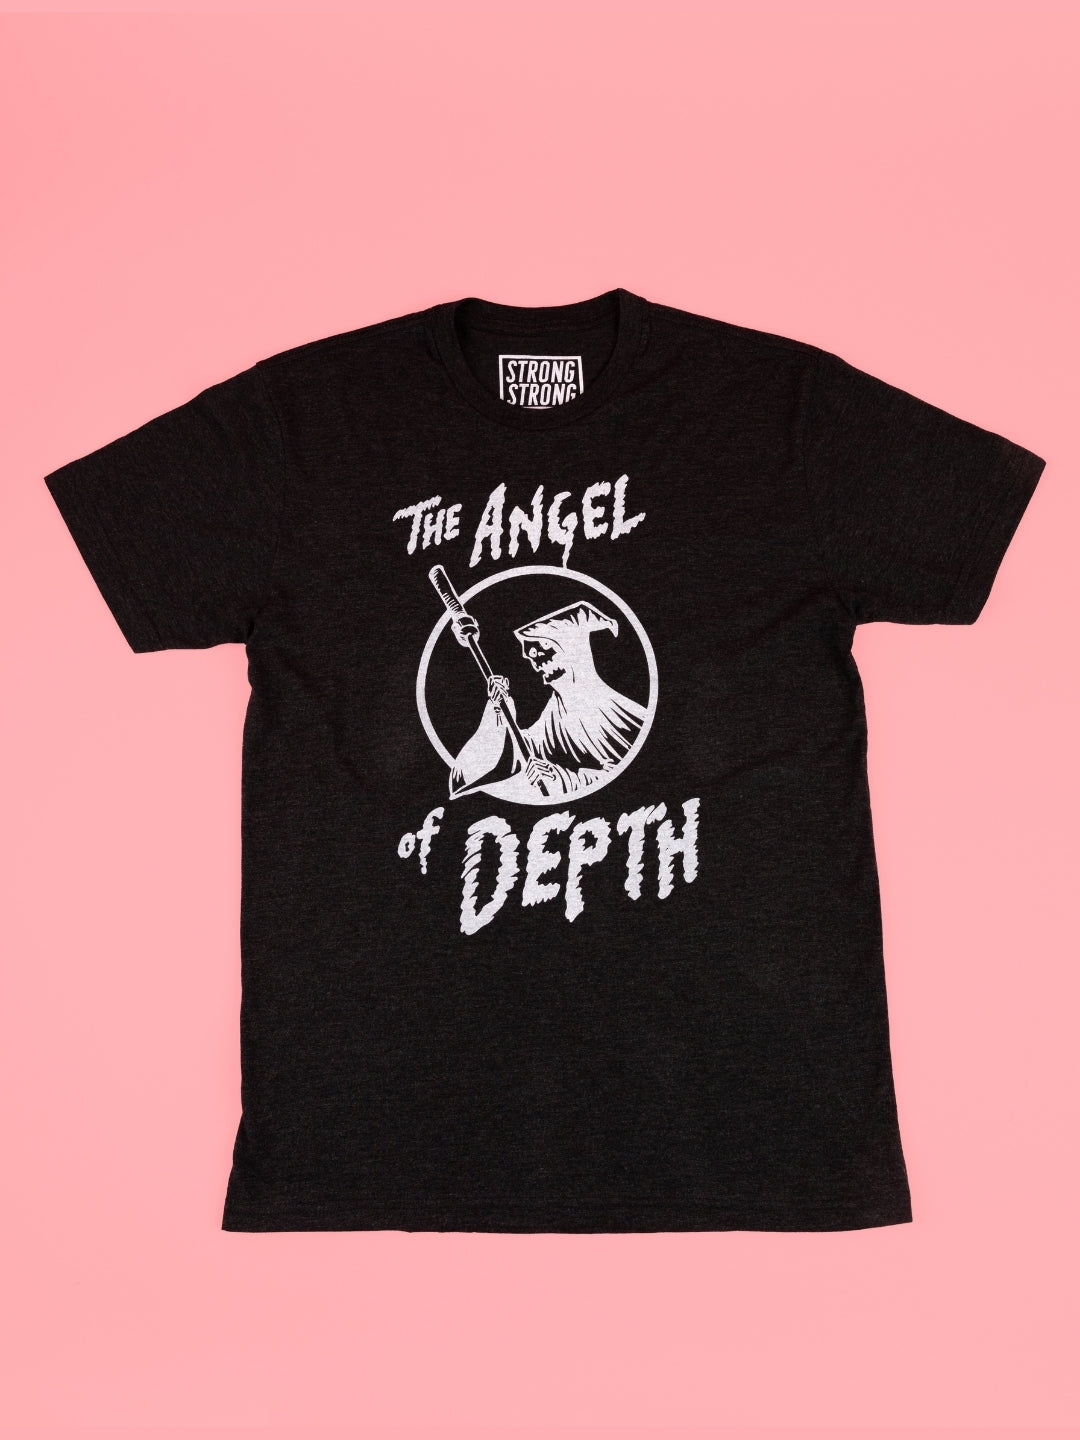 The Angel of Depth t-shirt in unisex